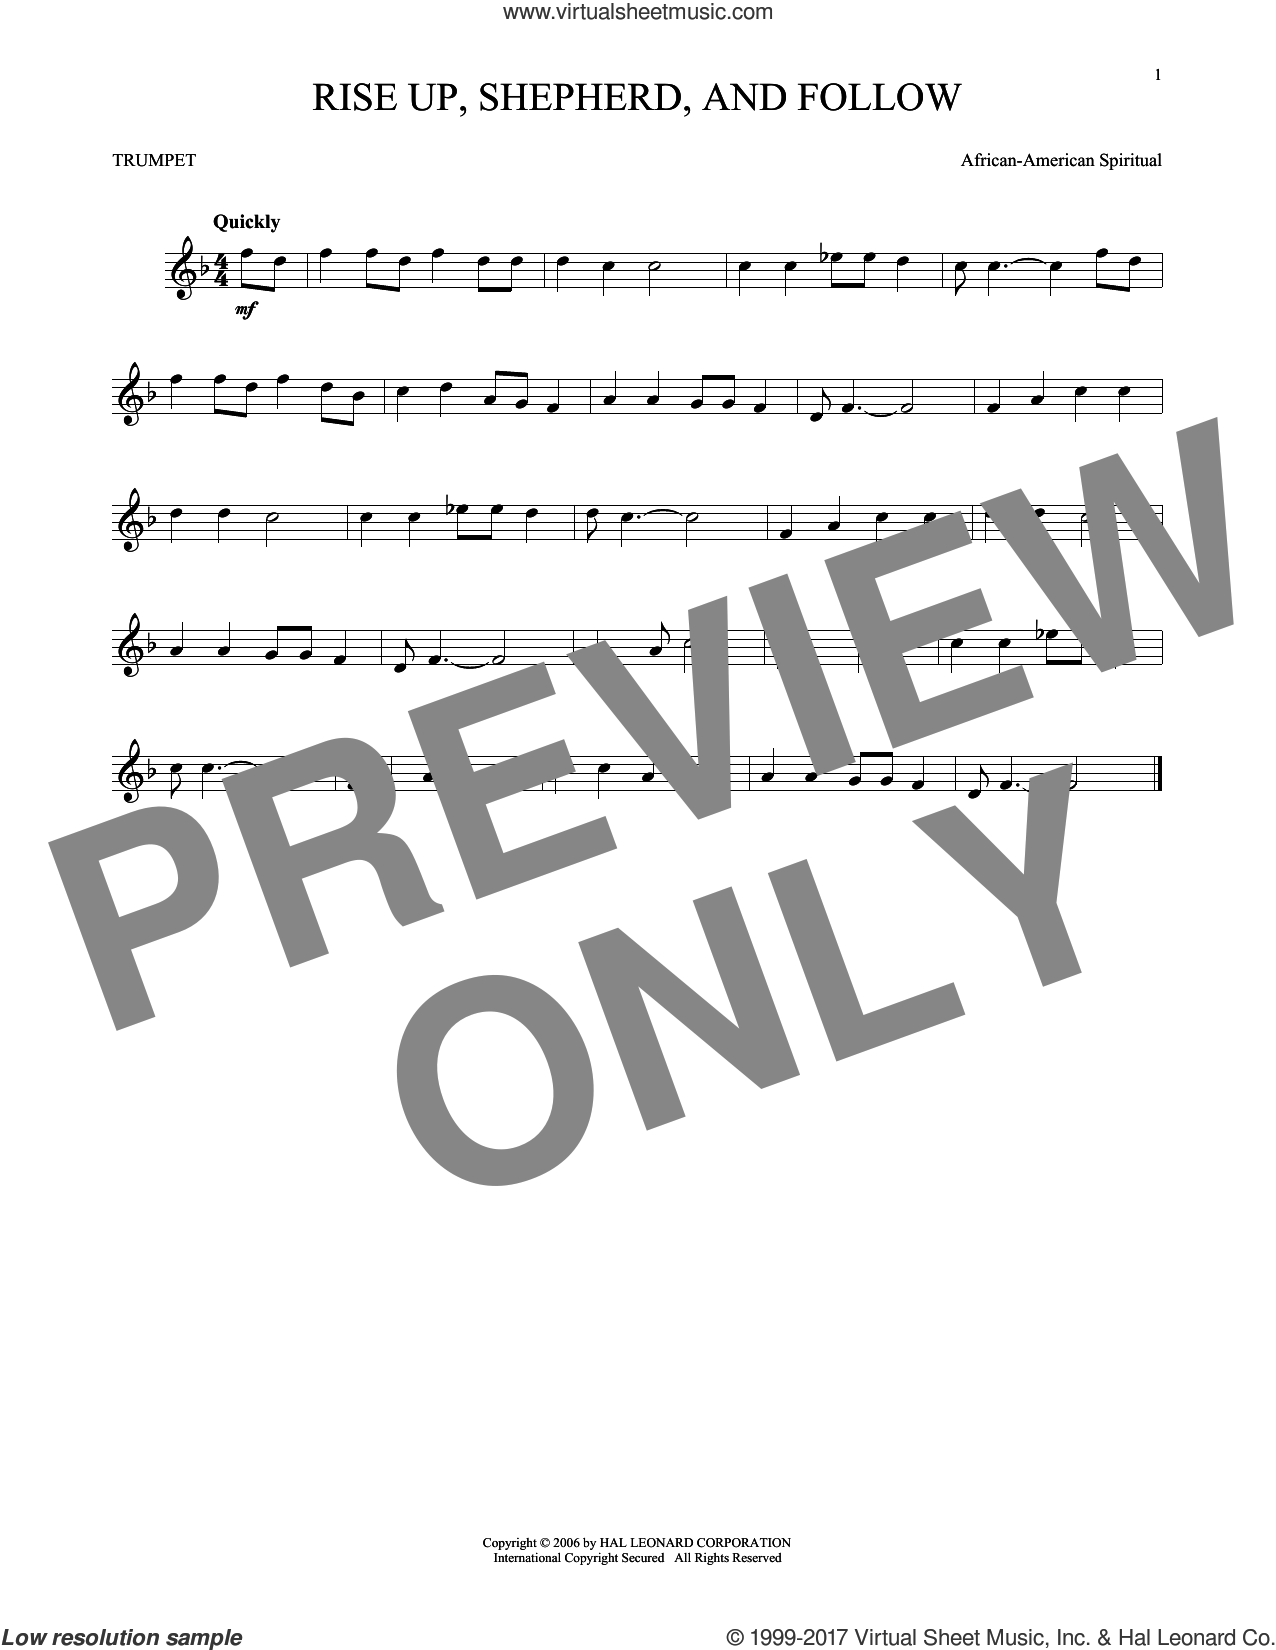 Rise Up, Shepherd, And Follow sheet music for trumpet solo, intermediate skill level